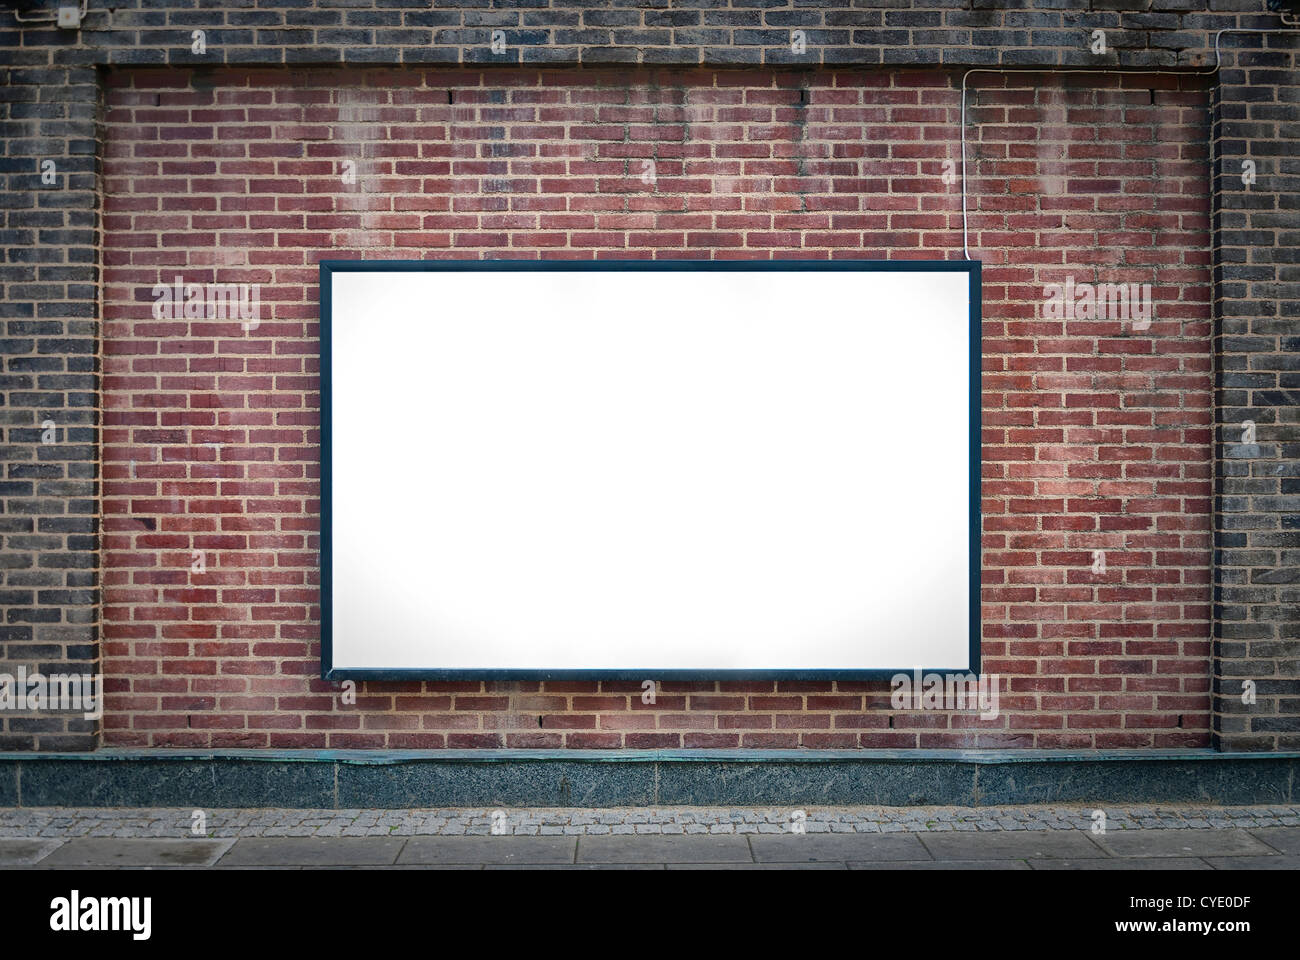 one blank billboard attached to a buildings exterior brick wall. - Stock Image